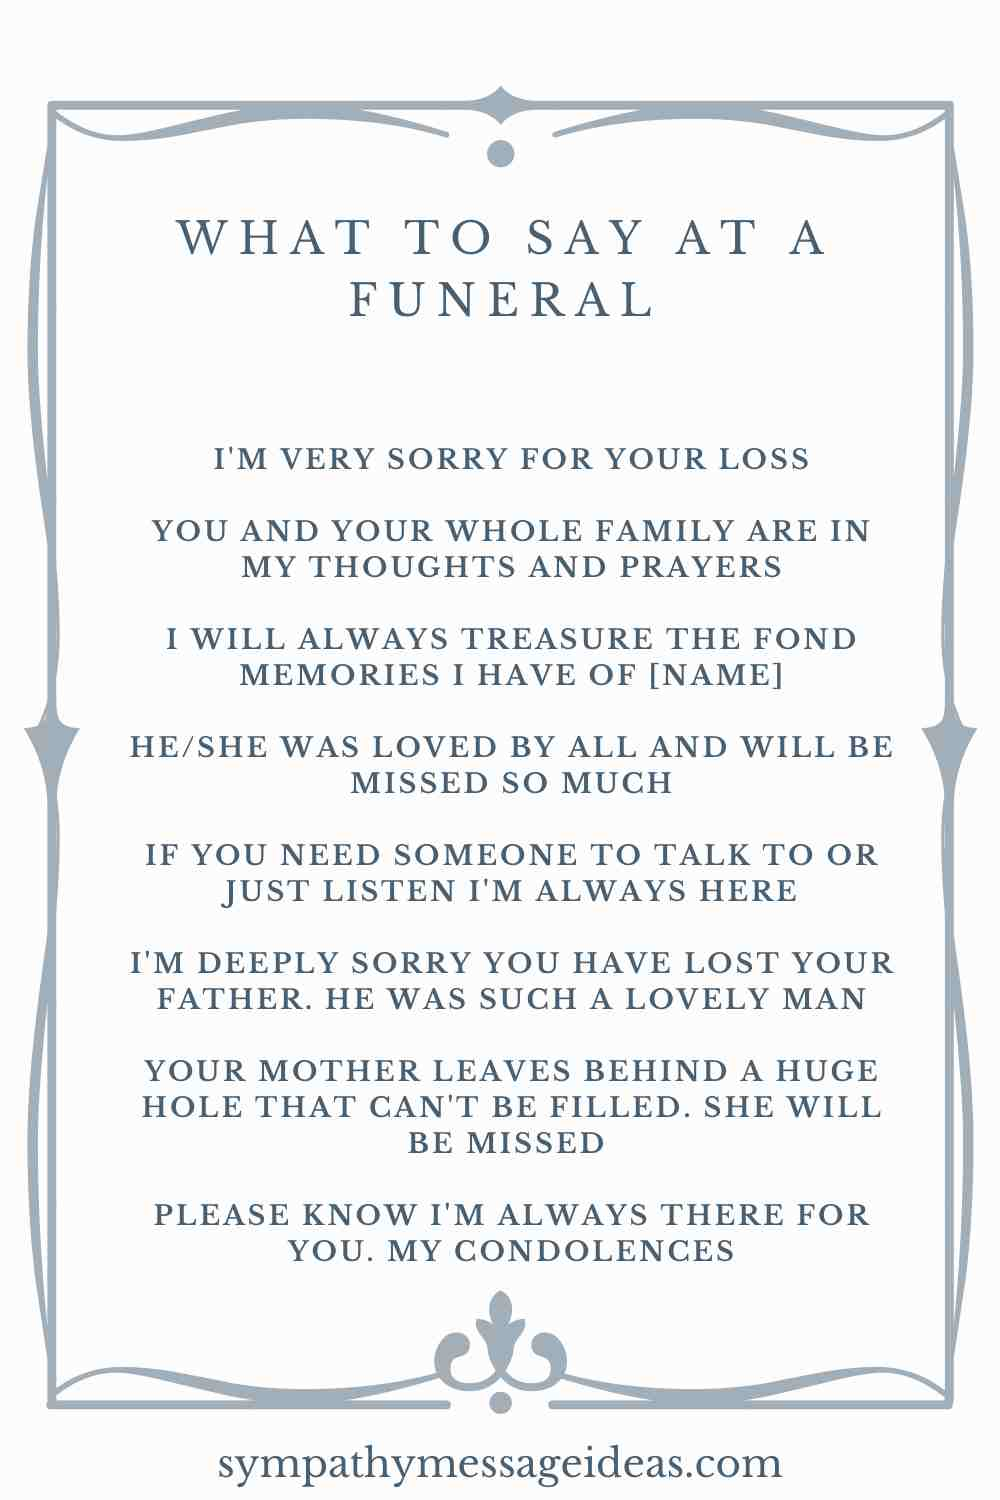 ideas for what to say at a funeral